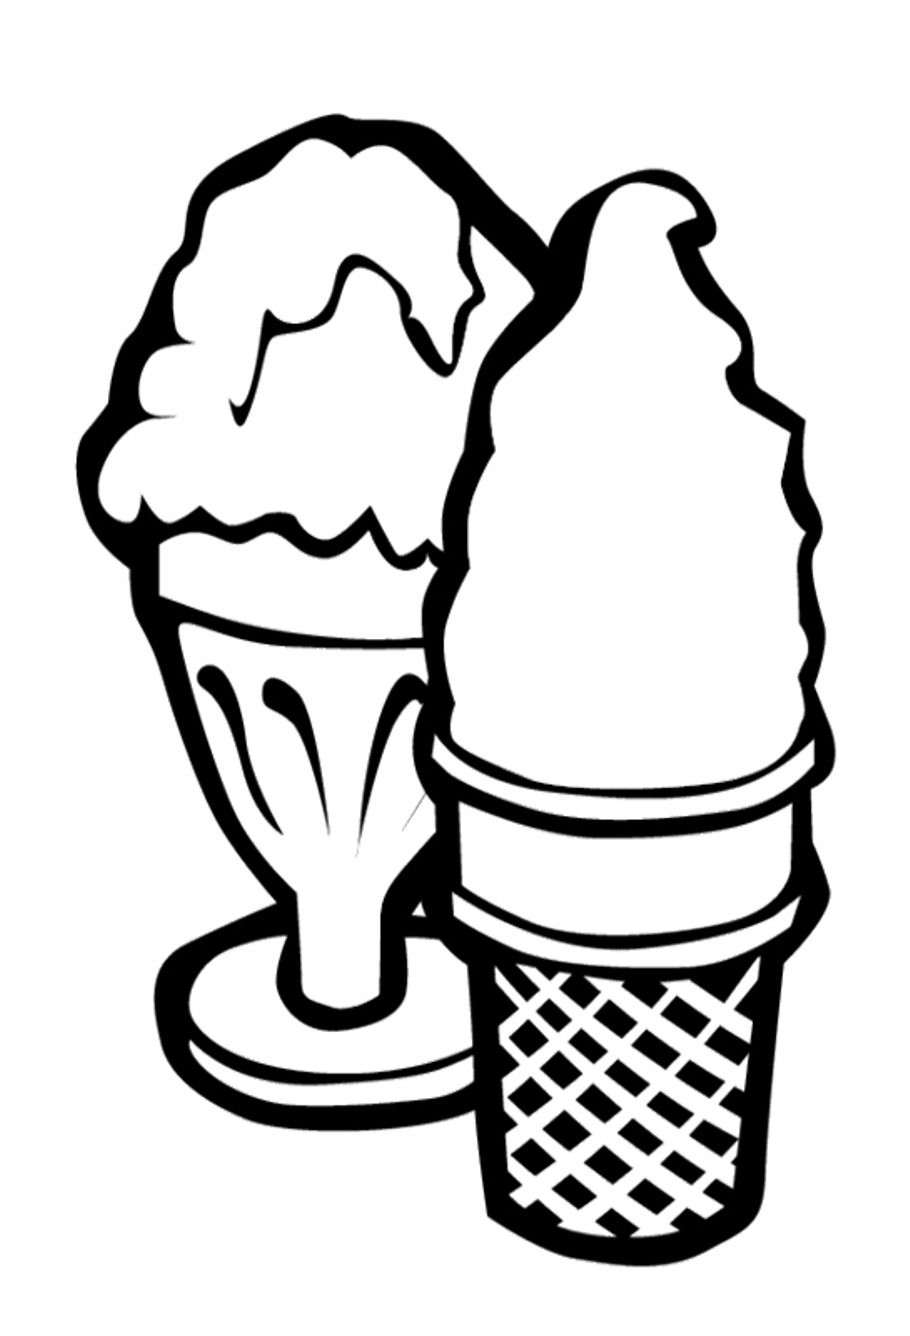 coloring pictures of icecream ice cream coloring pages for kids free large images coloring of pictures icecream